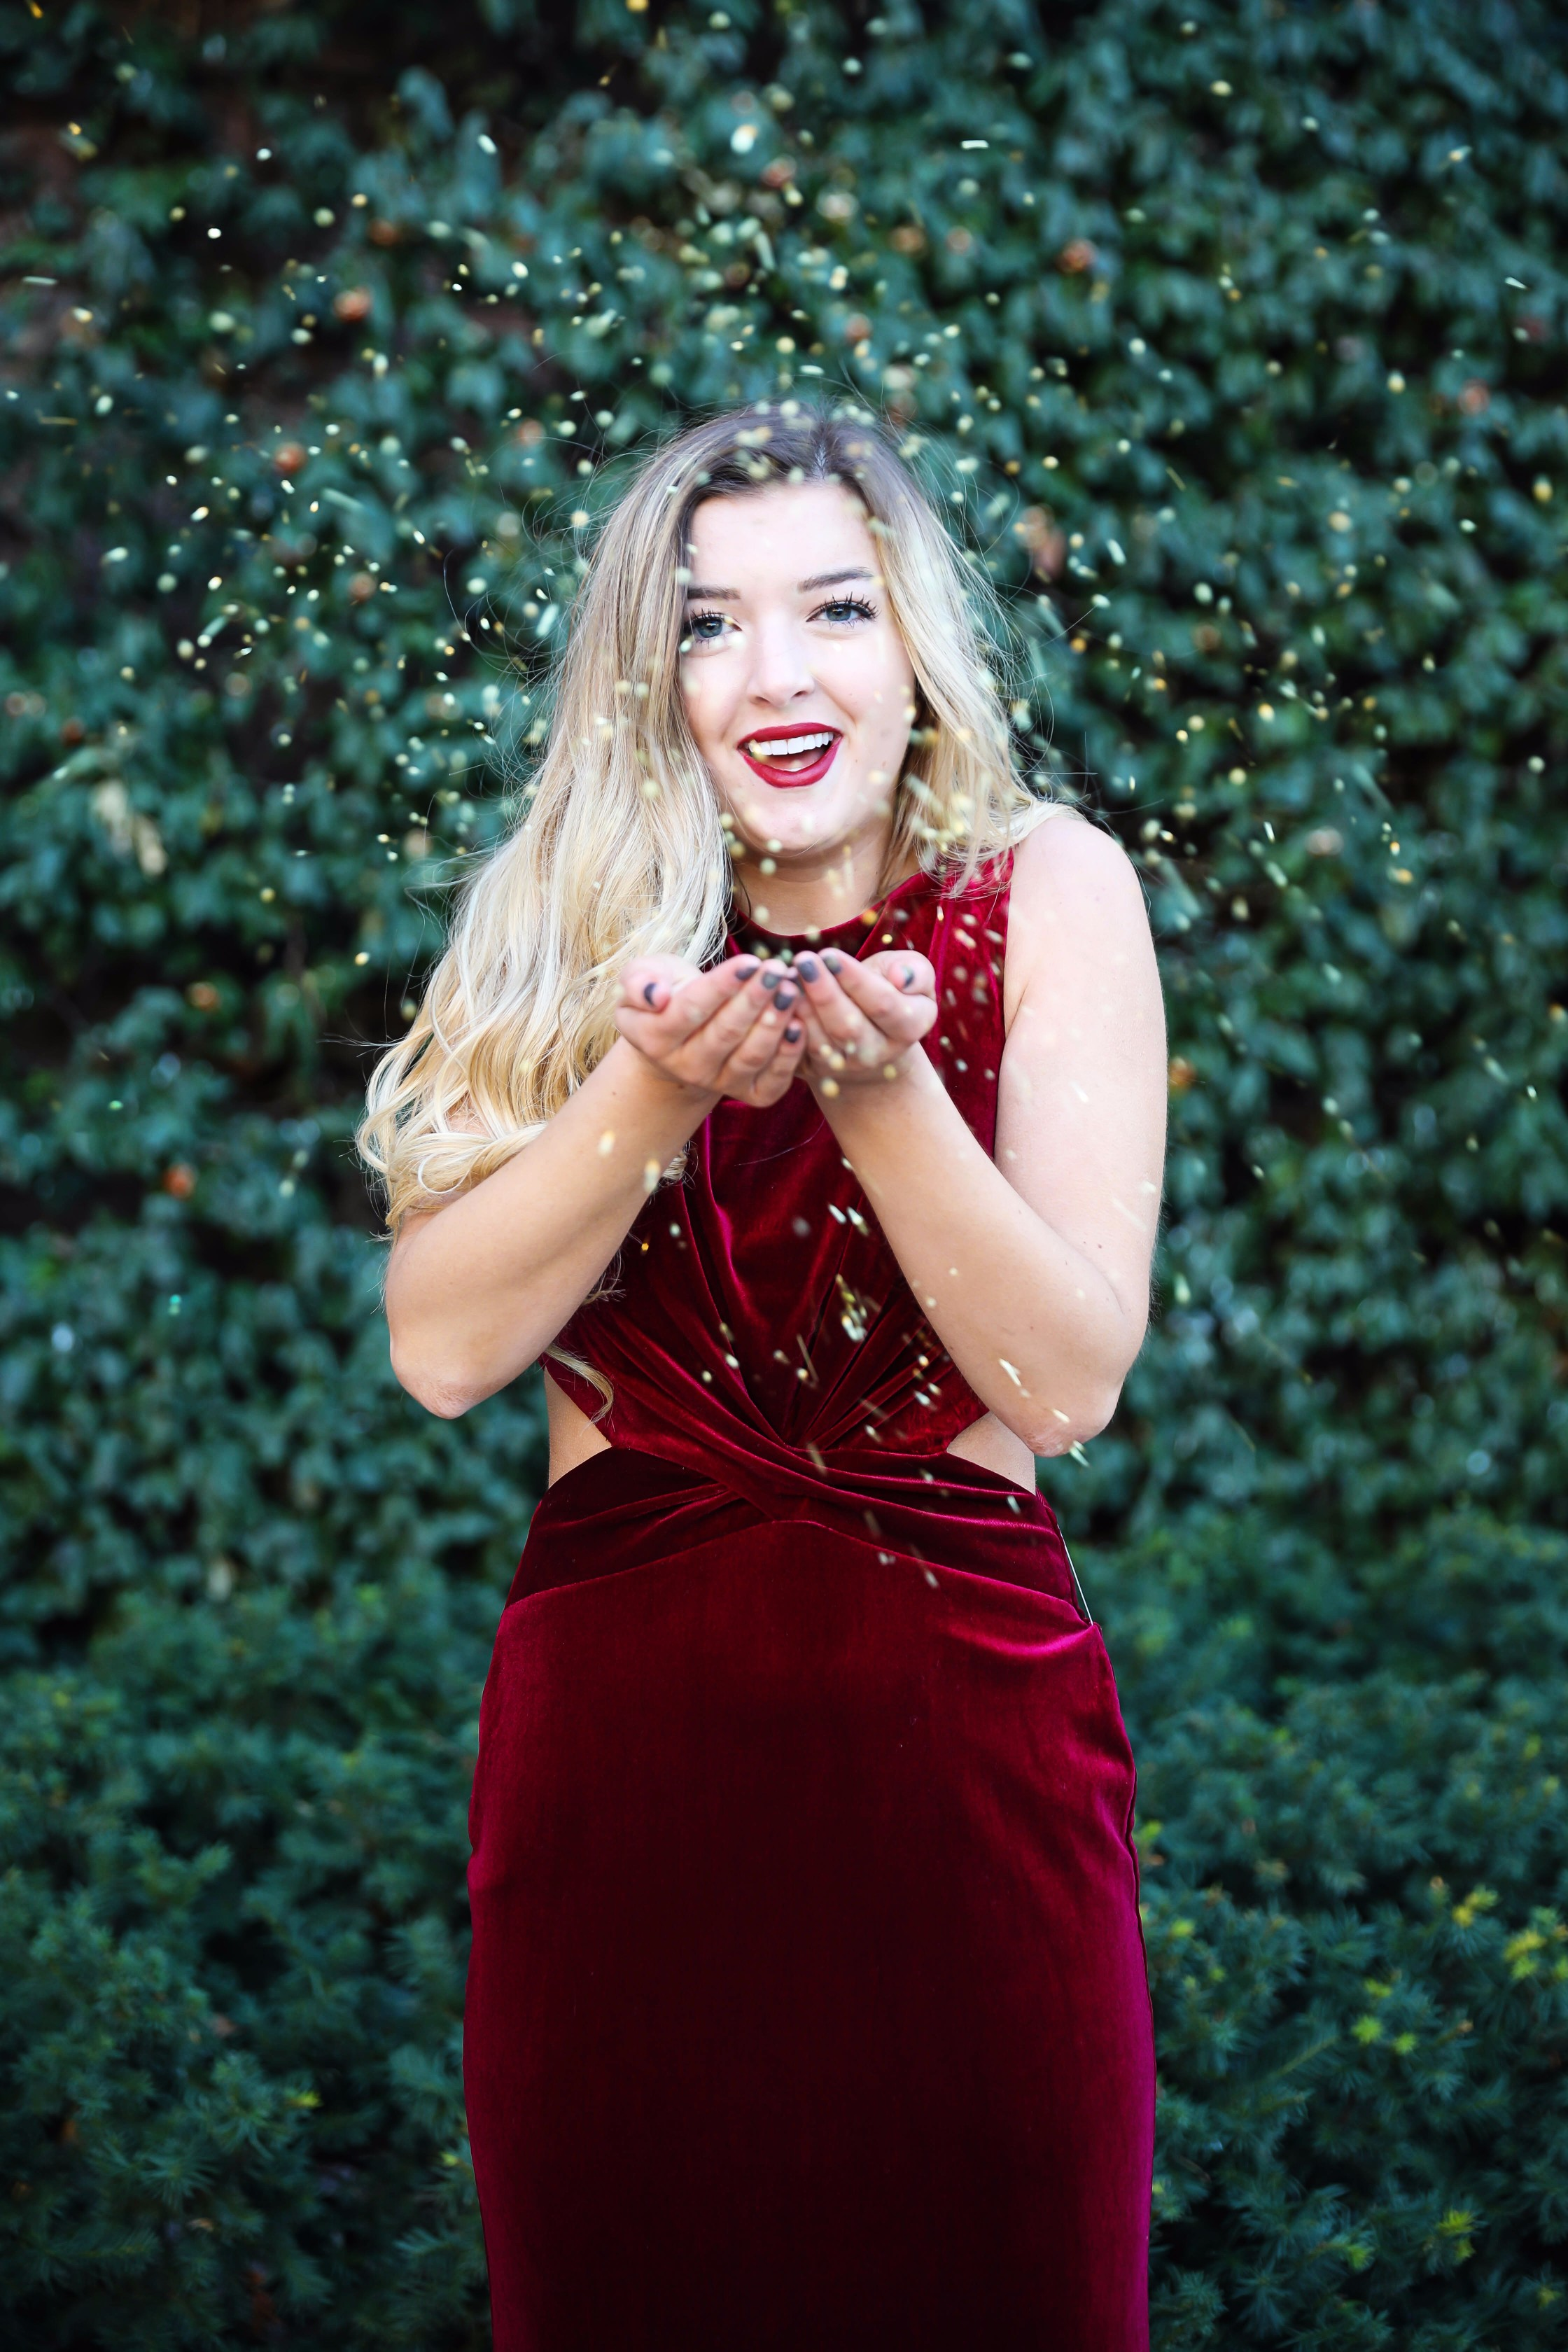 Holiday party dress idea! I love this elegant red velvet maxi dress, perfect for christmas coctail dress! Details on fashion blog daily dose of charm by lauren lindmark